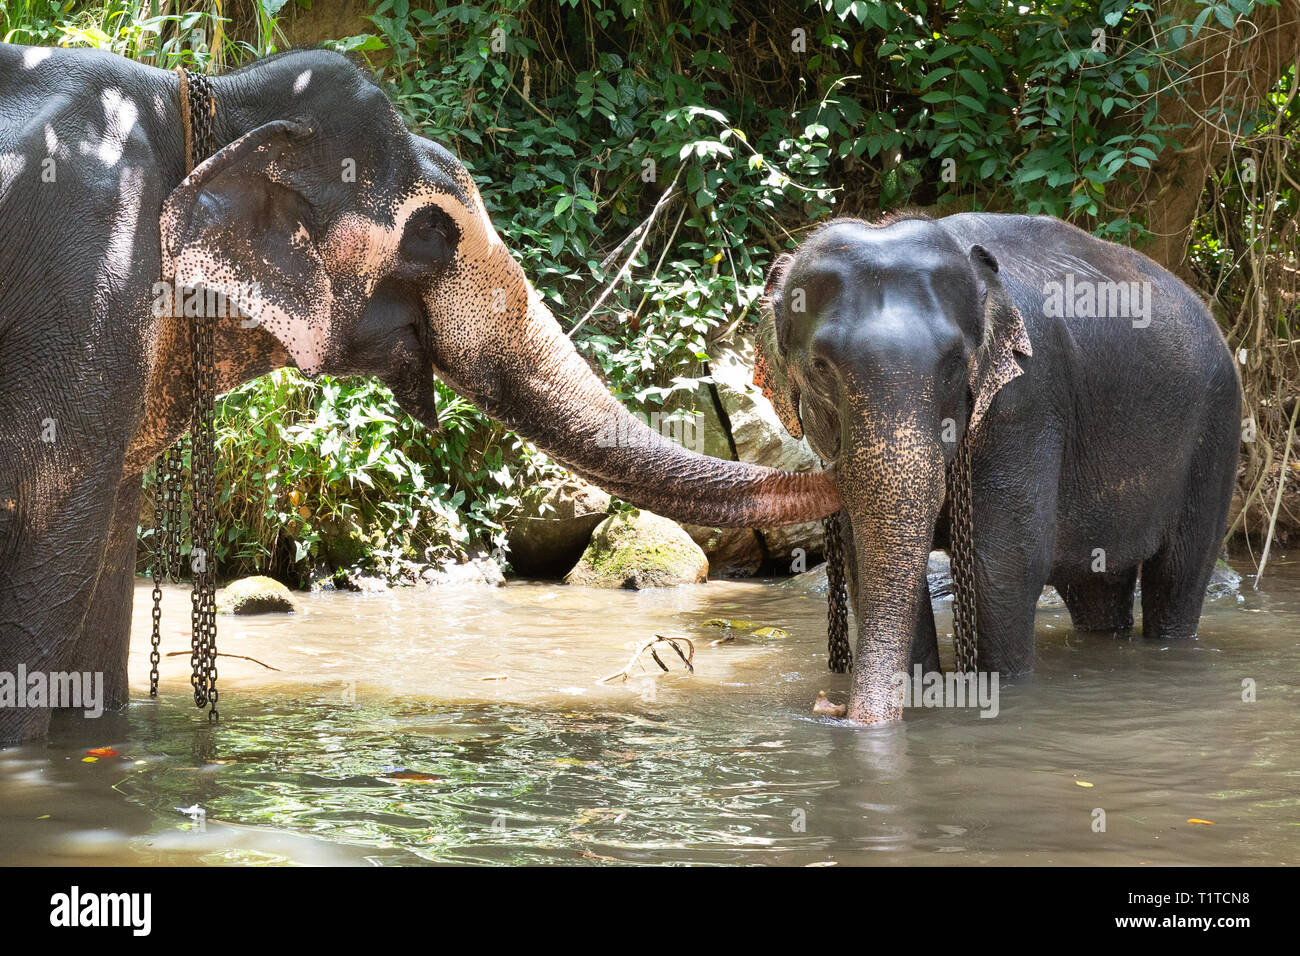 Tourist Asian elephants in captivity, chained, abused for tourist trap. Animal rights, animal abuse, responsible tourism and ethics concept. - Stock Image